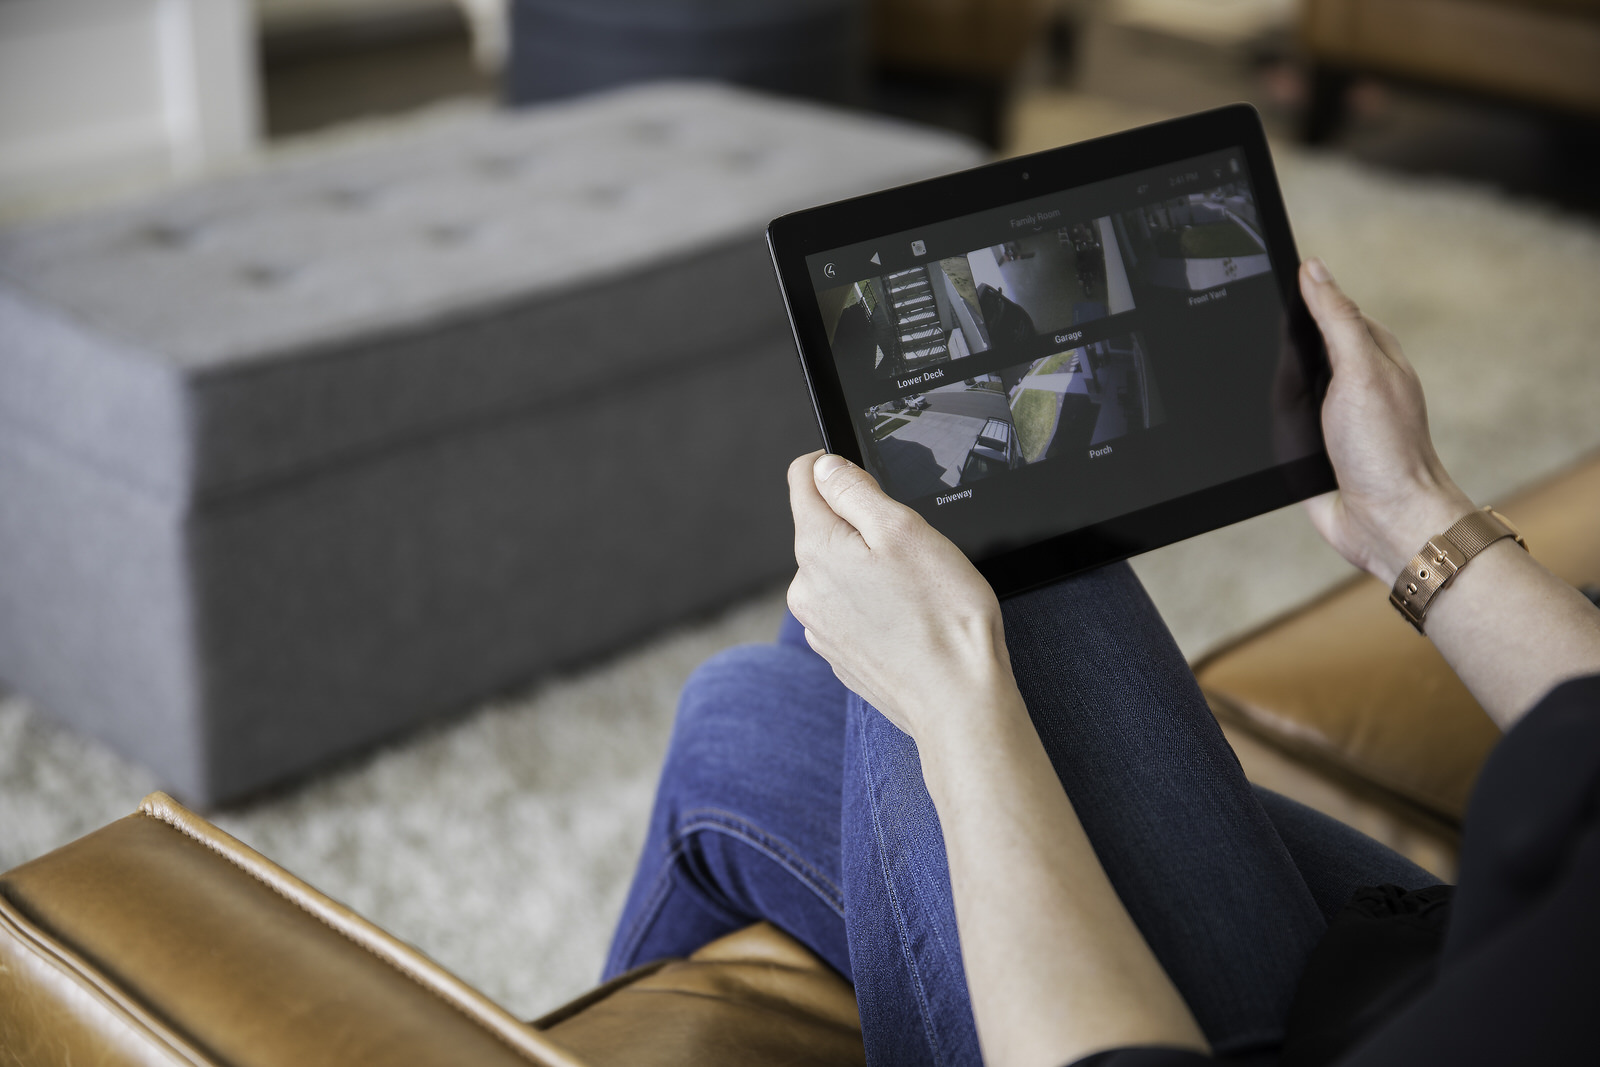 Smart_Home_Security_Man_Sitting_On_Brown_Sofa_Holding_iPad_Watching_Video_CCTV_Camera_Surveillance_Blue_Jeans_Grey_Rug